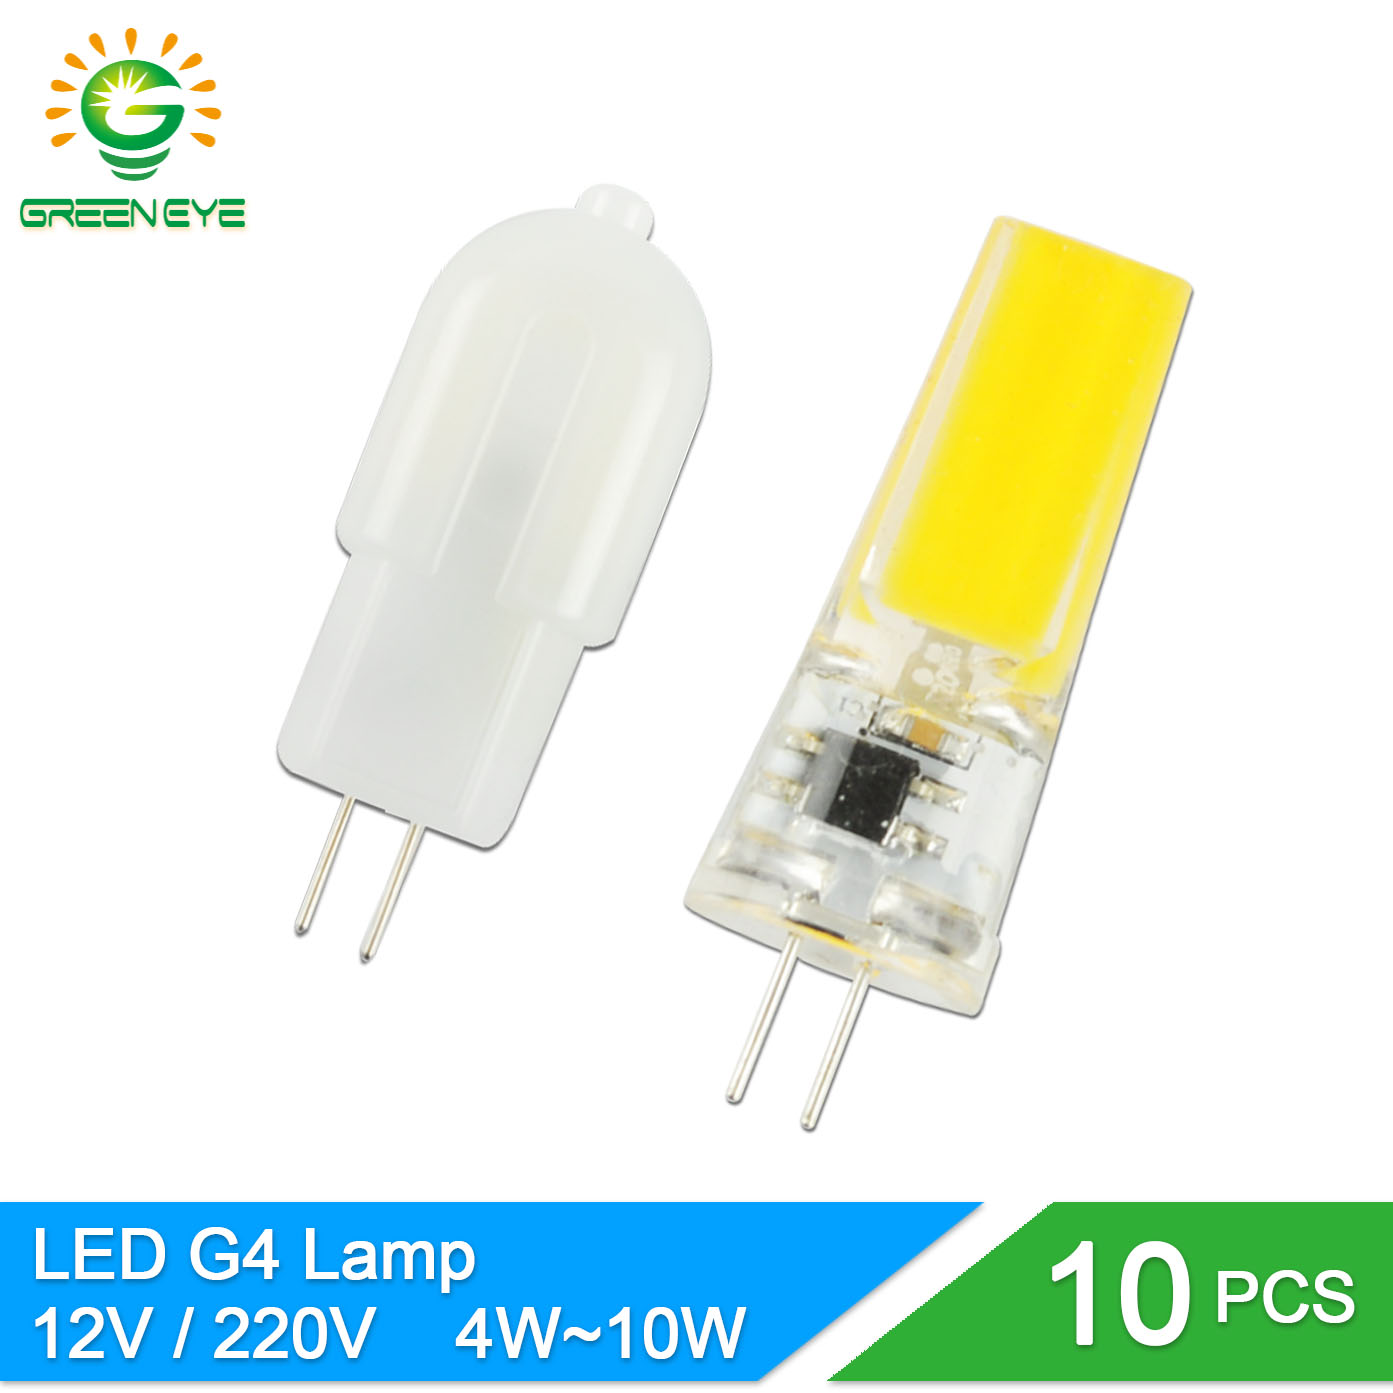 greeneye 10pcs mini g4 led lamp ac220v acdc12v smd2835. Black Bedroom Furniture Sets. Home Design Ideas